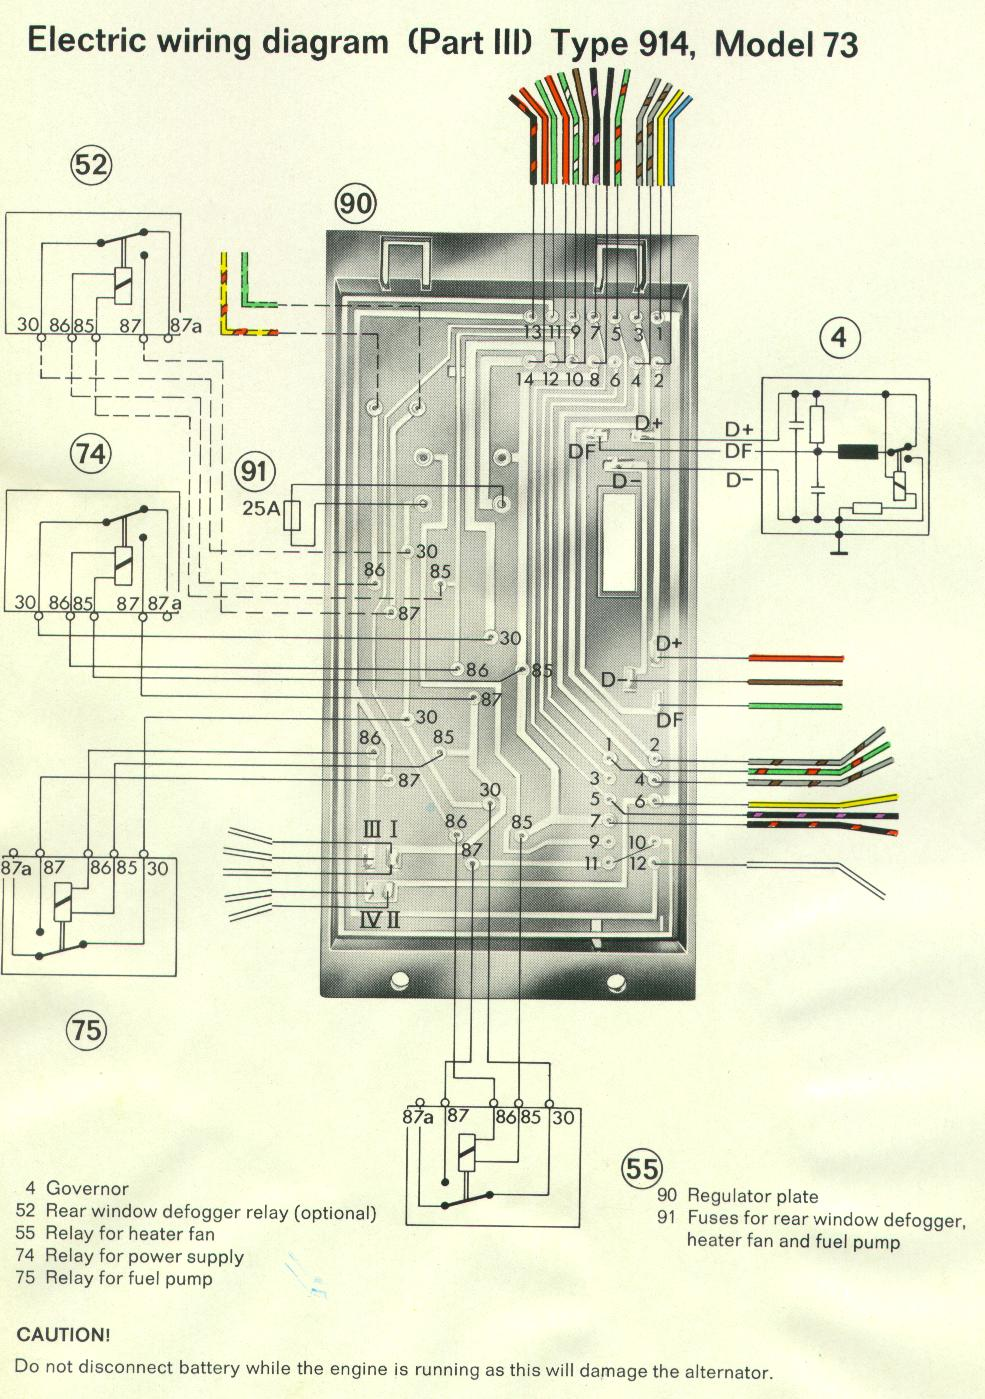 Wiring Diagram For A 74 Charger Library Ghia Imghttp 914worldcom Bbs2 Uploads Offsite